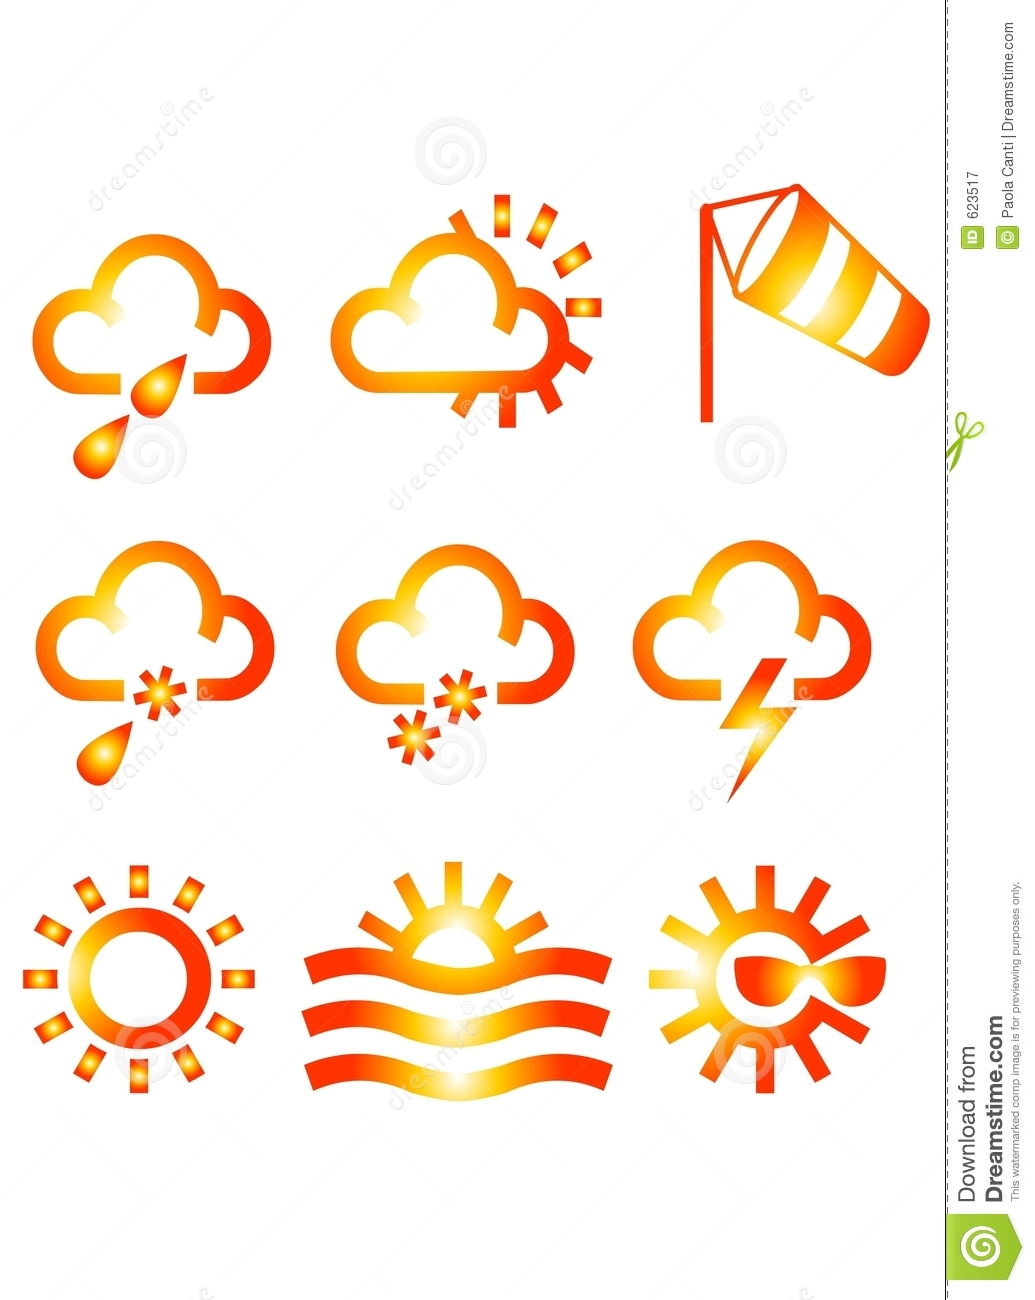 METEO Icons Royalty Free Stock Photography - Image: 623517